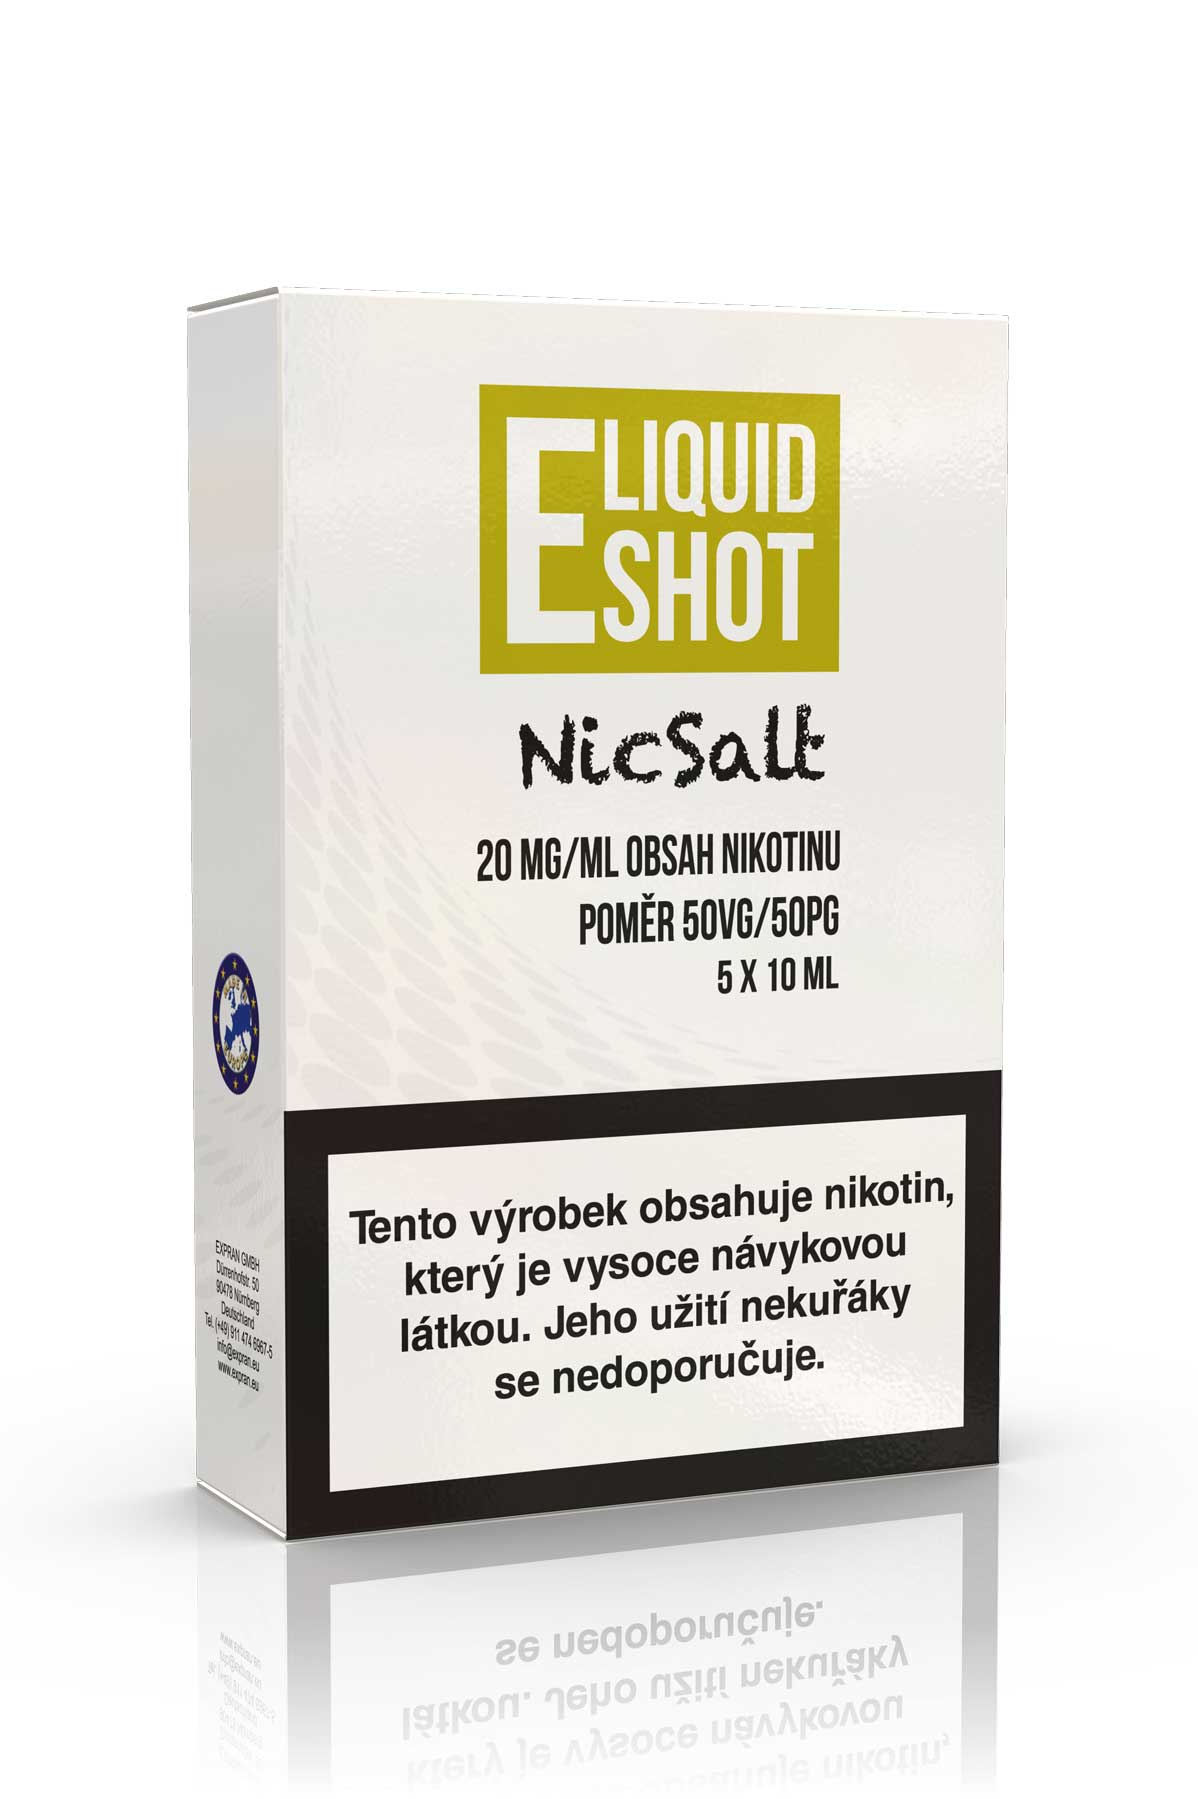 5 pack E-Liquid Shot Booster NicSalt 50PG/50VG 20 mg/ml